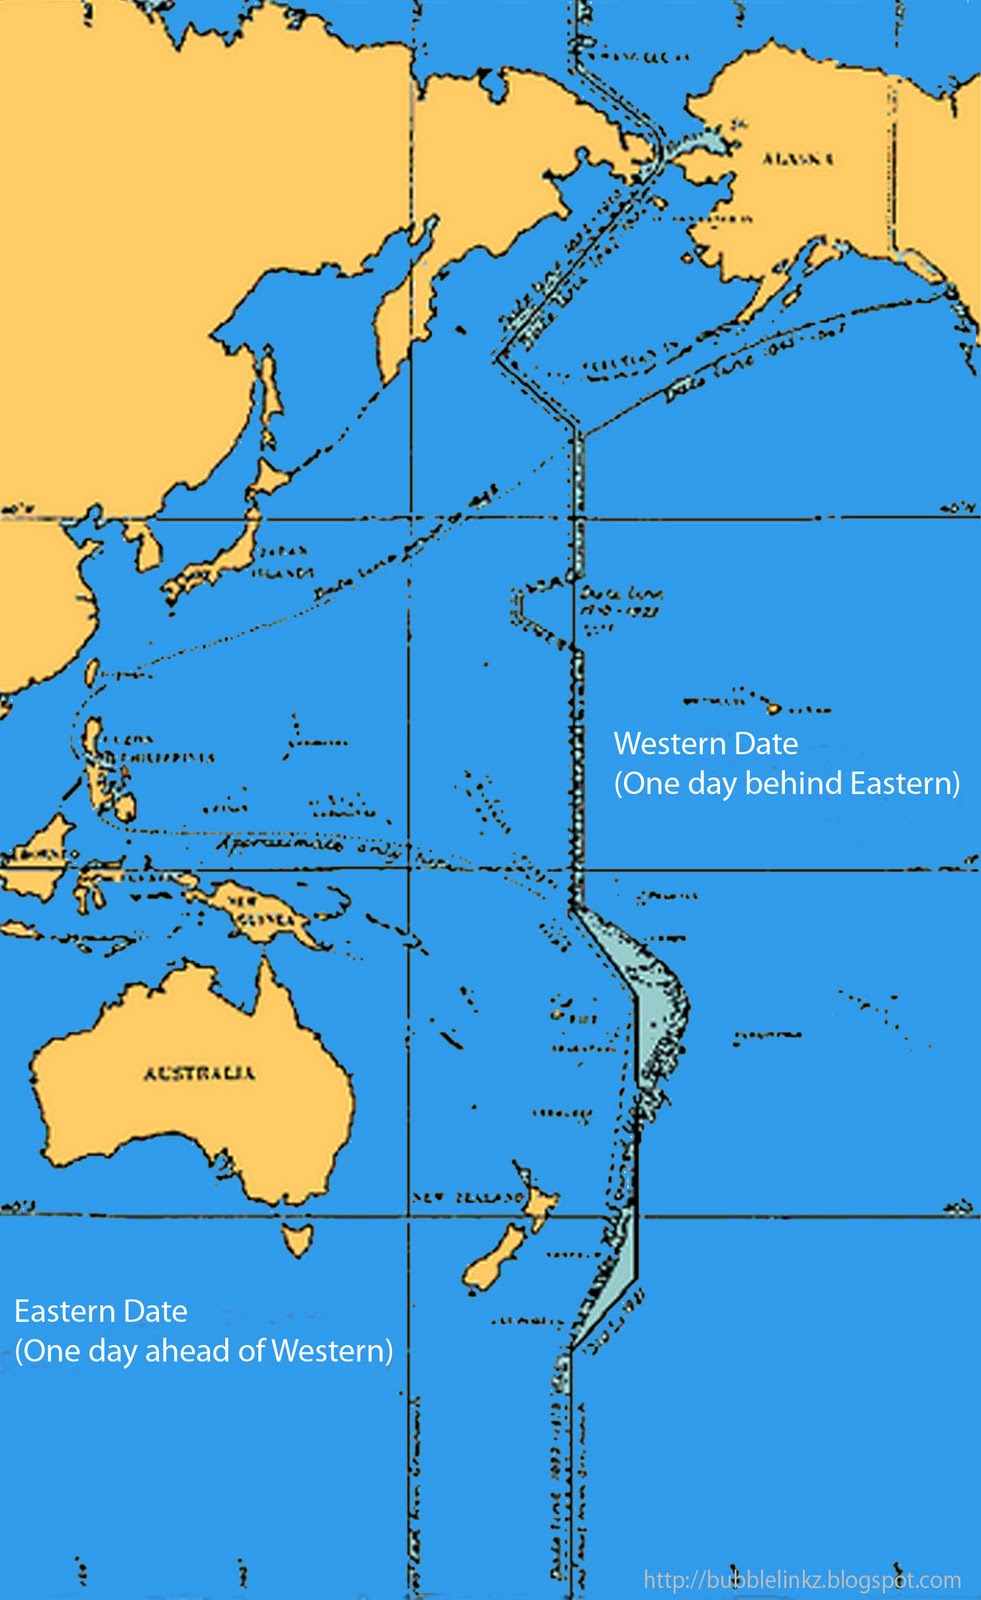 Date Line - usually called the